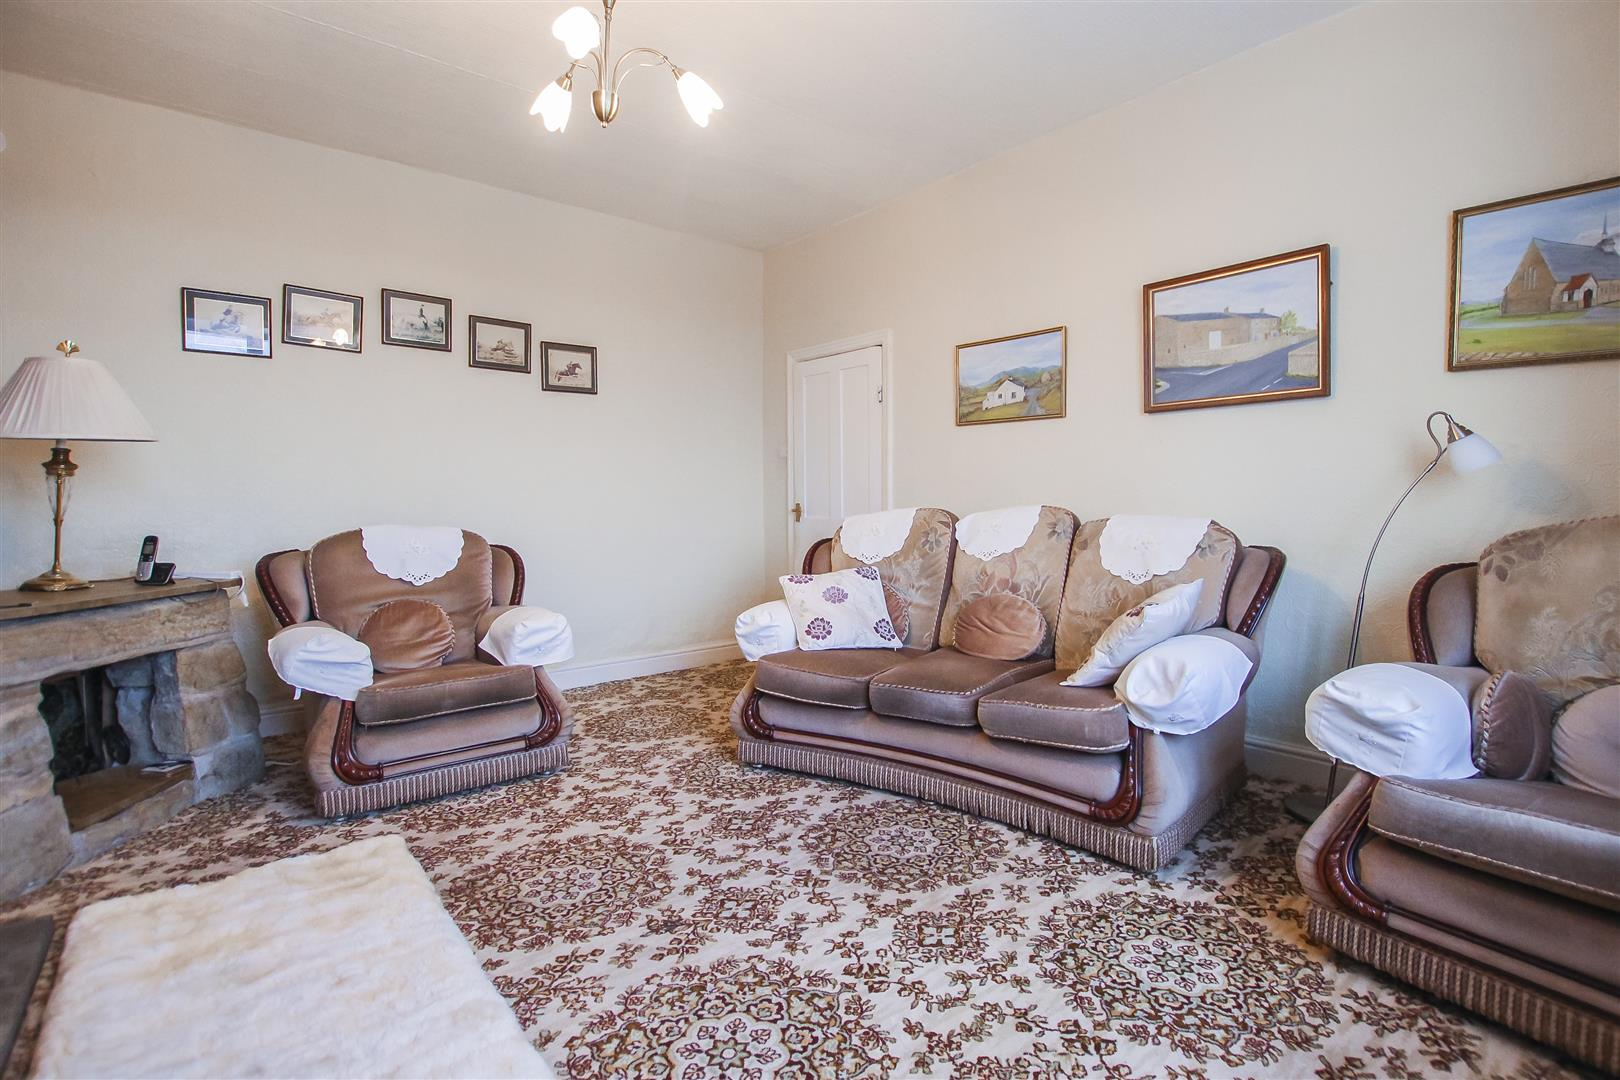 4 Bedroom House For Sale - Reception Room One